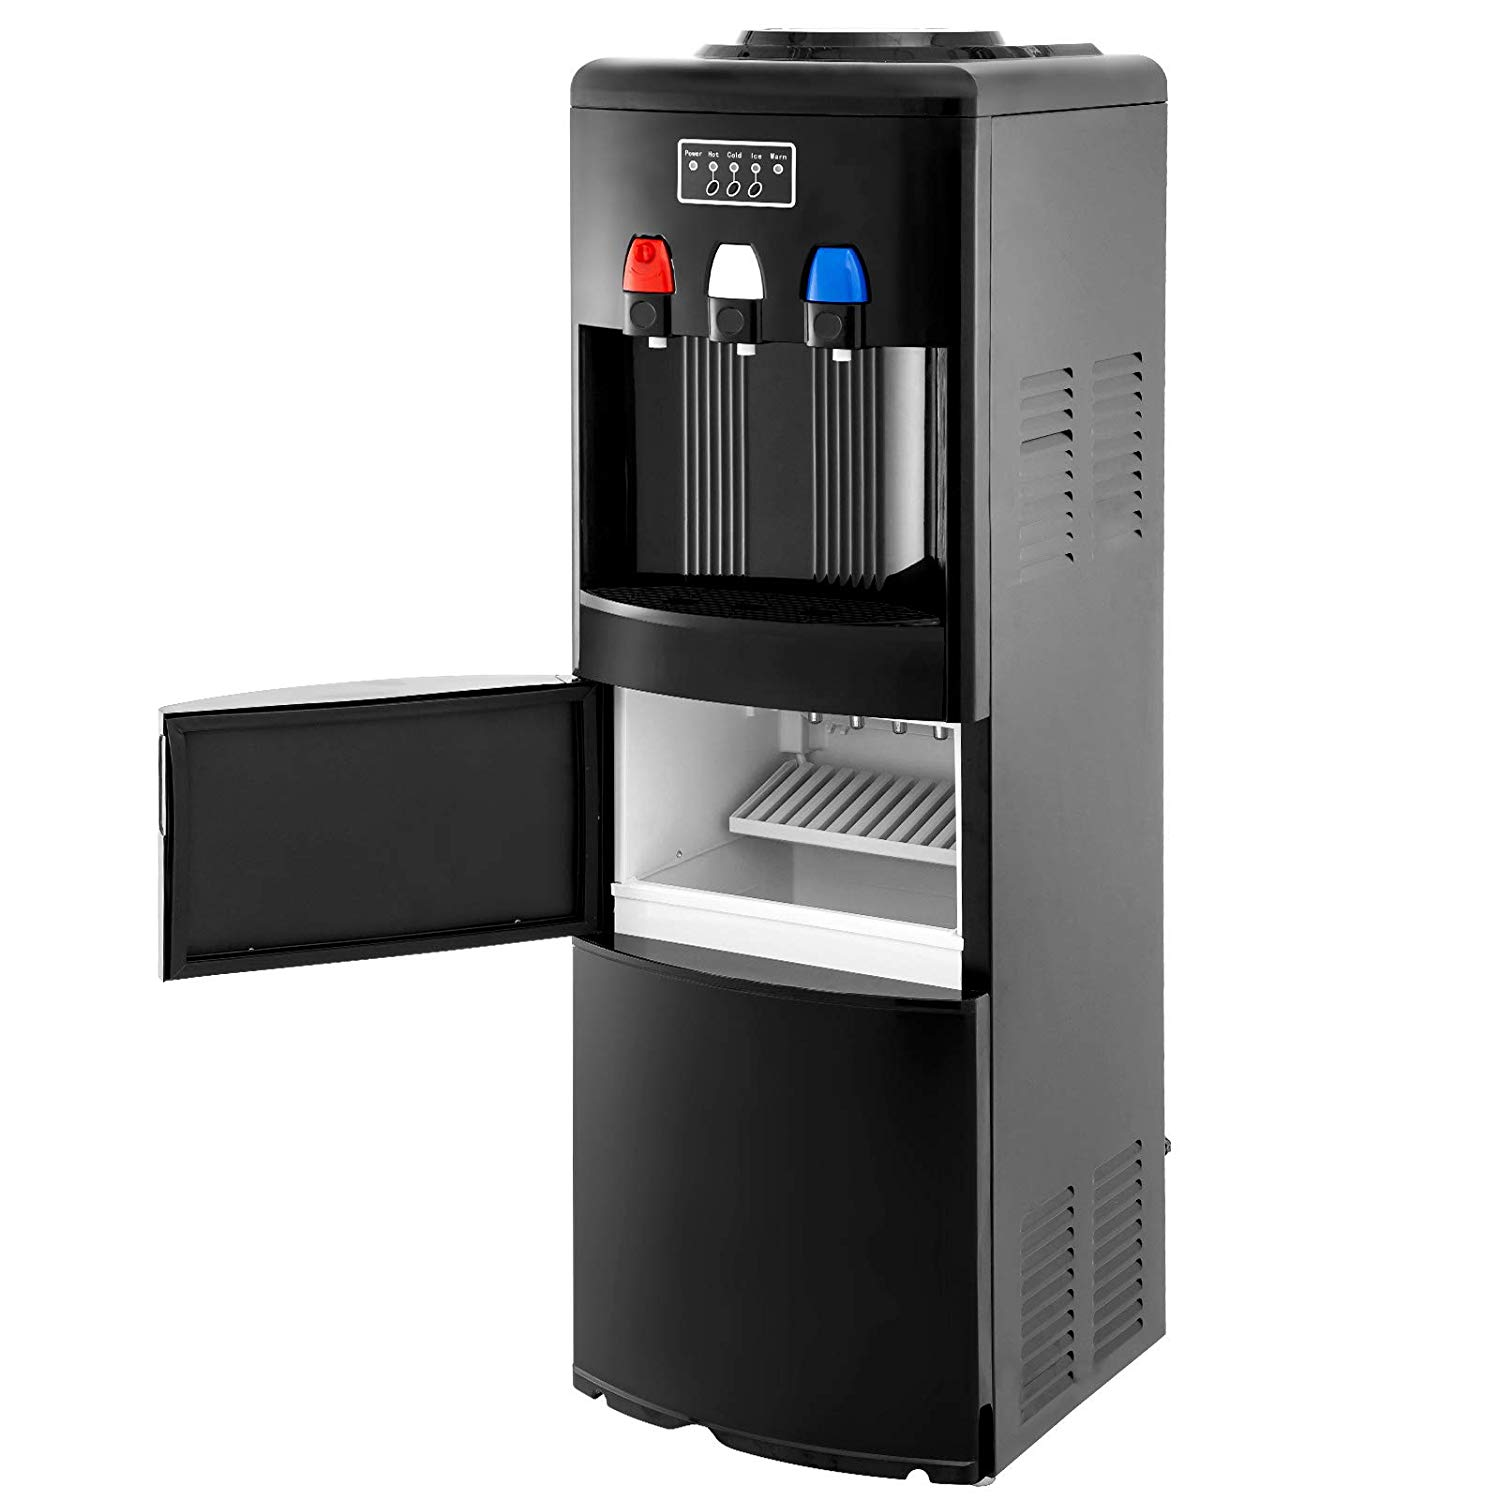 Electric Hot Cold Water Cooler Dispenser W Built In Ice Maker Machine Hot And Cold Top 3 5 Gallon Bottle Walmart Com Walmart Com